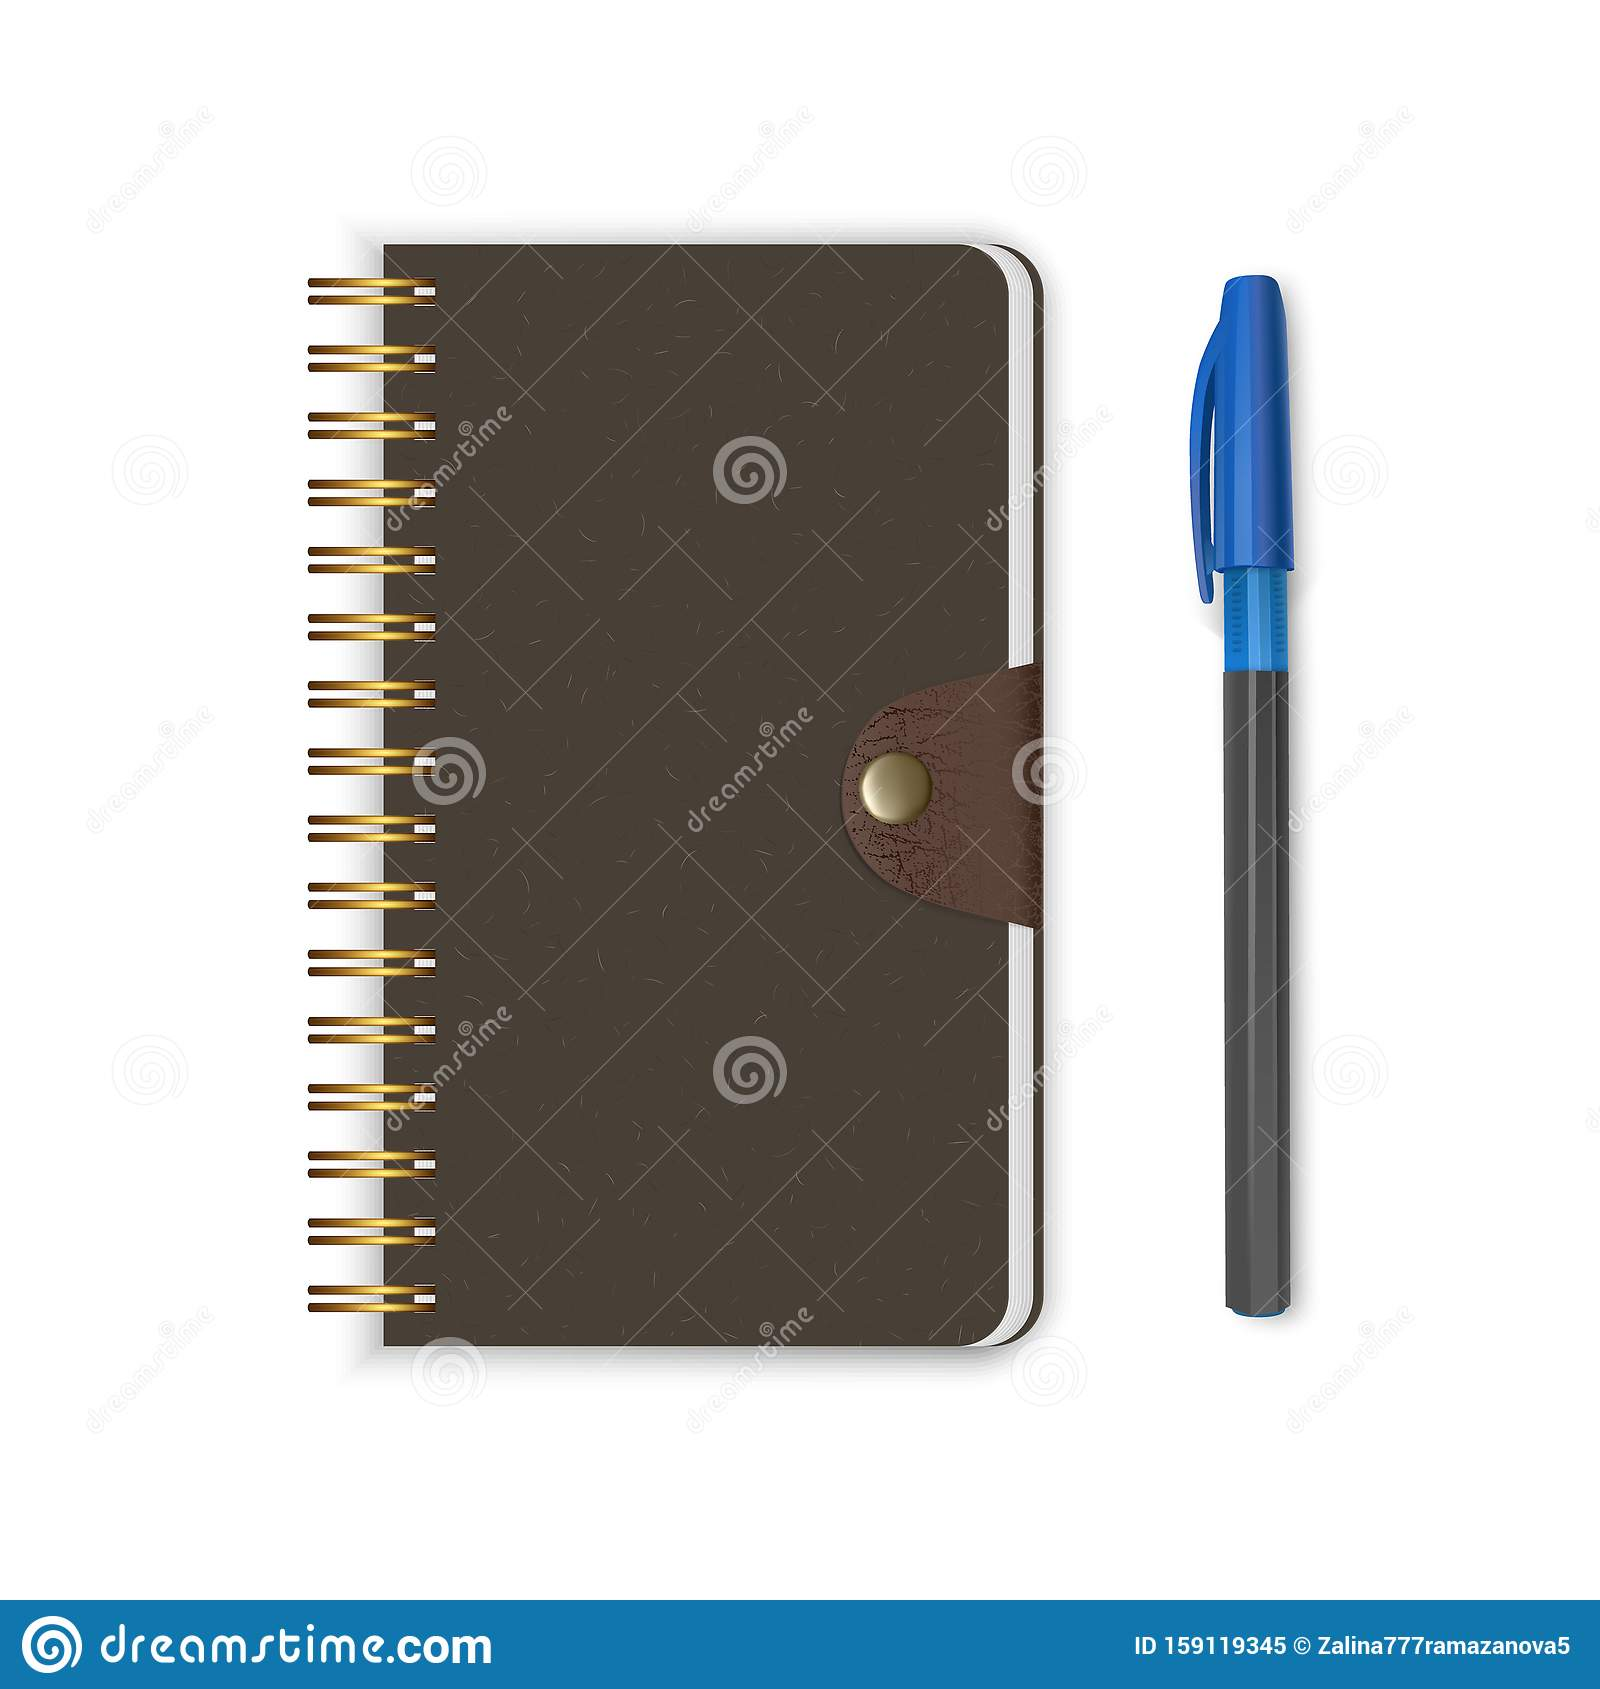 Realistic Logo Mockup On White Paper: Spiral Binding Notebook Or Notepad And Pen Isolated On